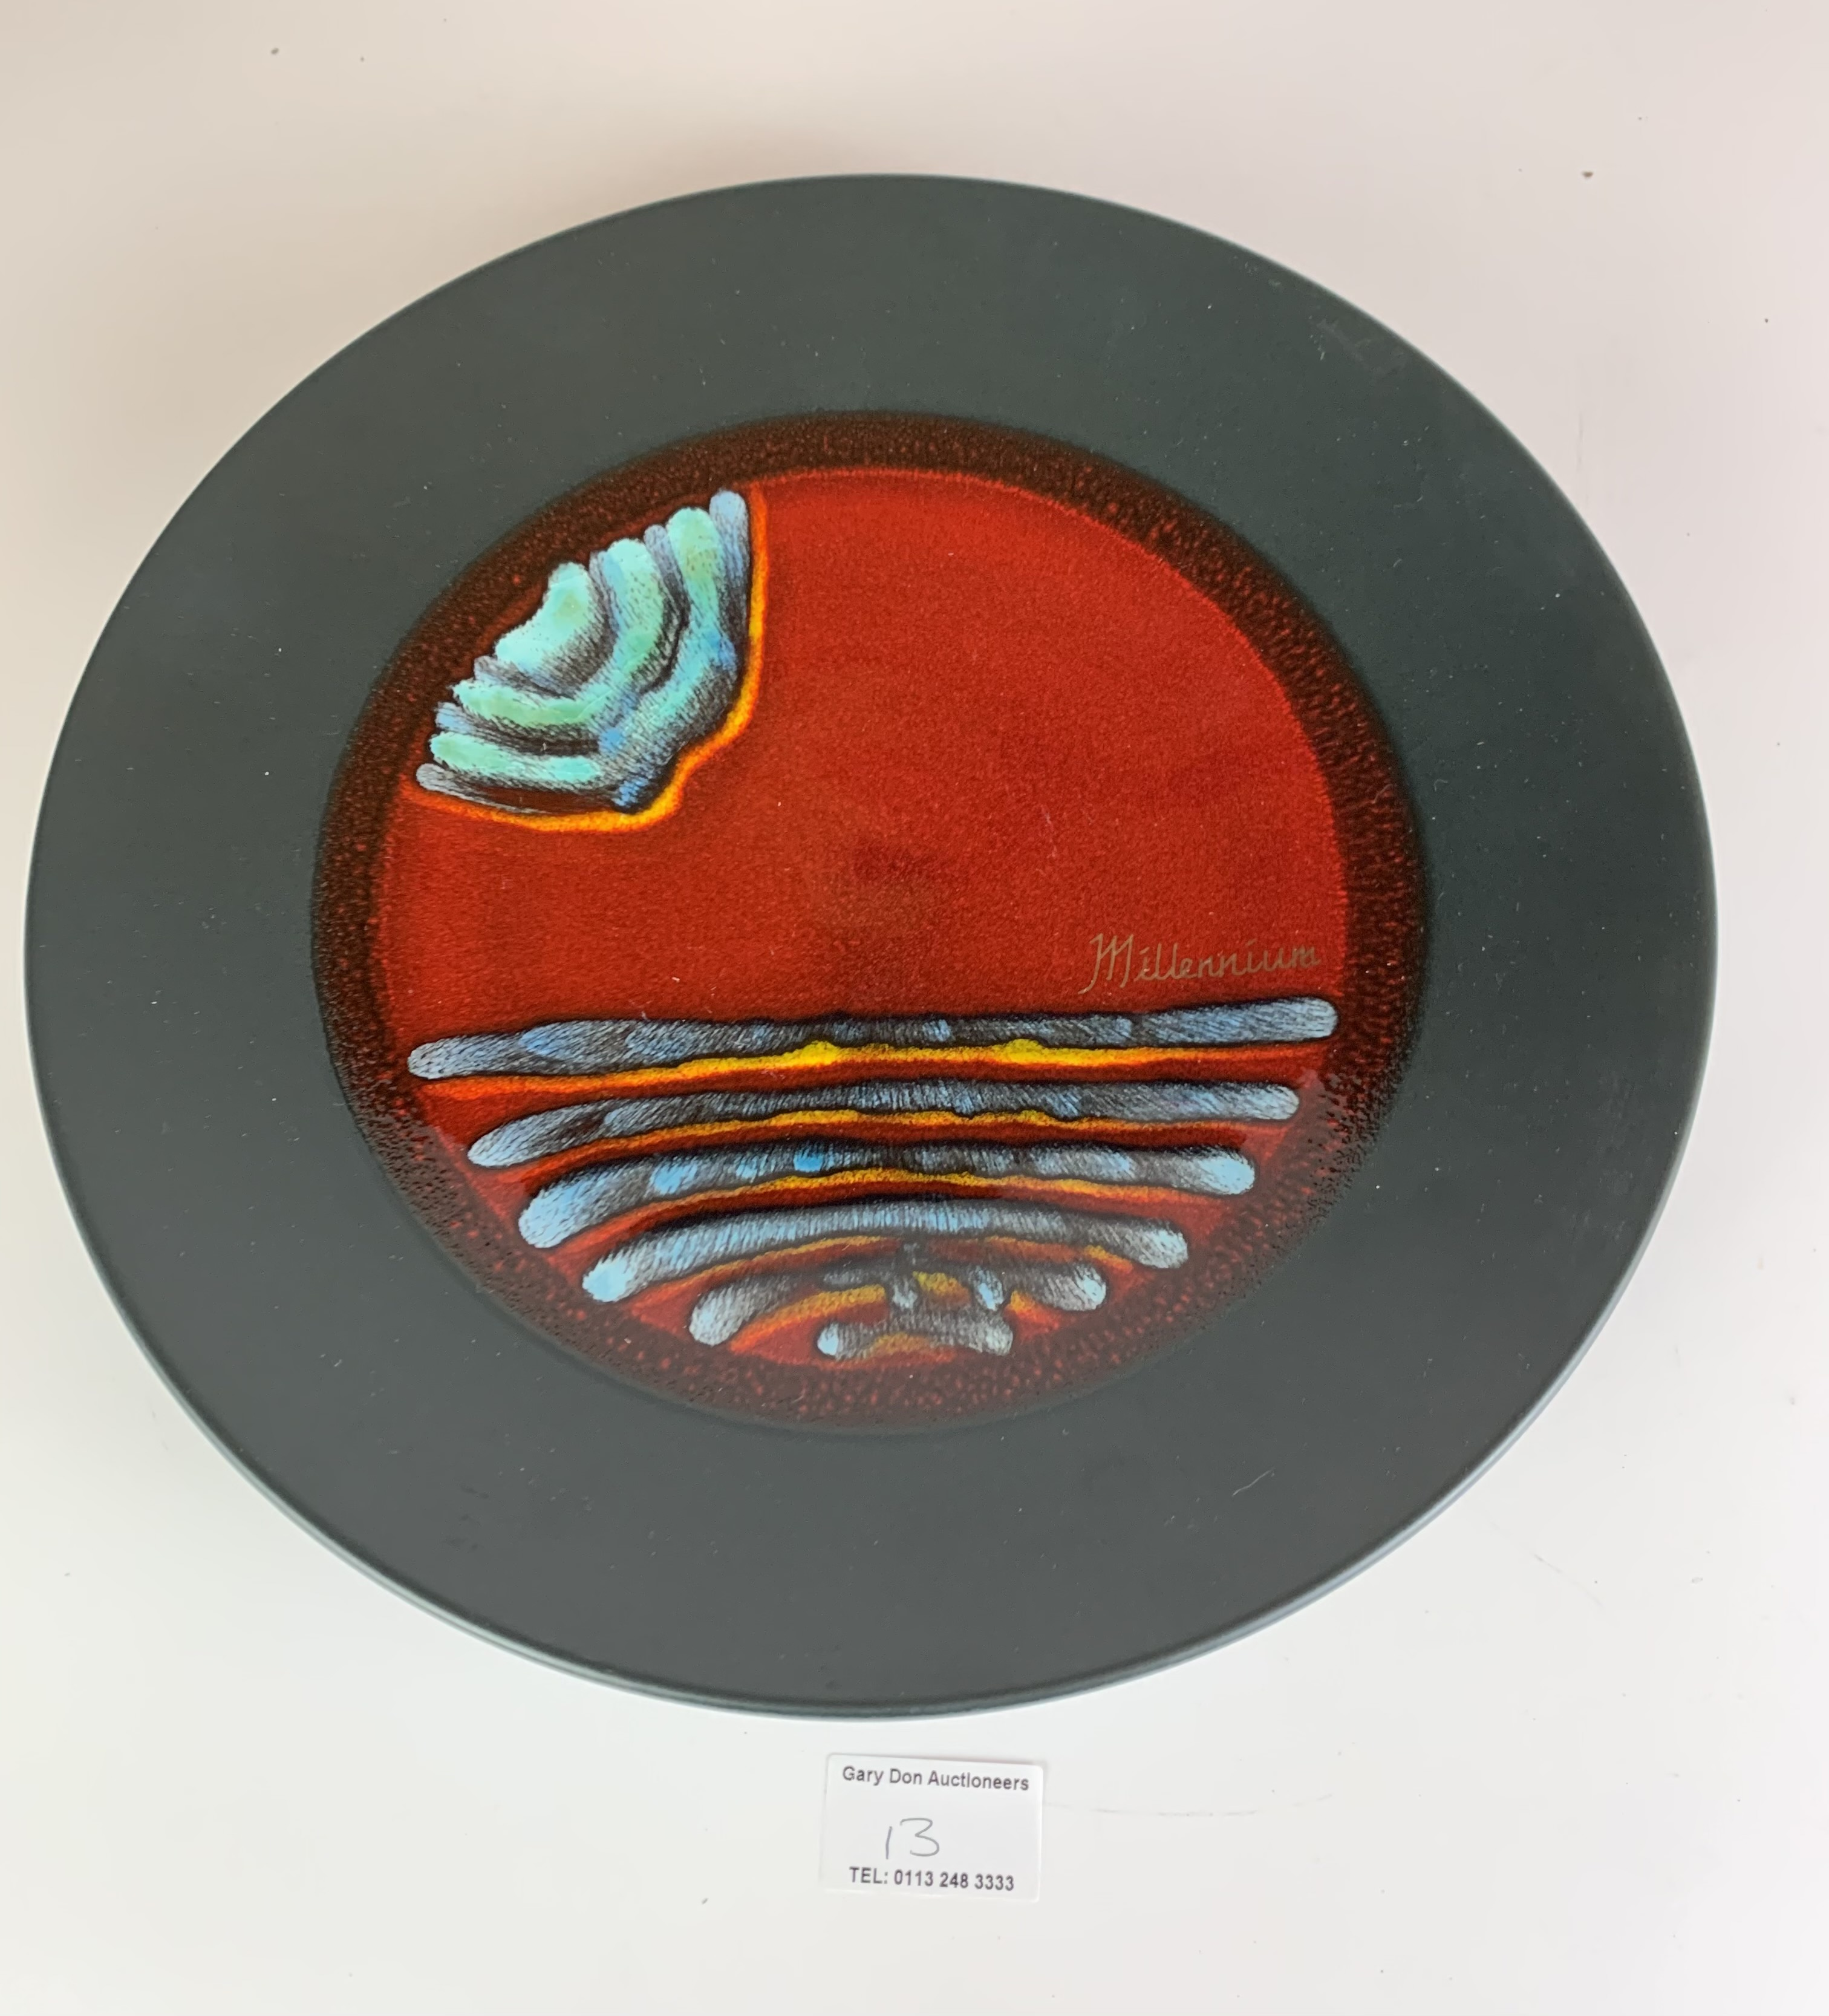 """Limited edition Poole plate, Millennium no. 211/500 with certificate, 10.5"""" diameter, no damage - Image 3 of 6"""